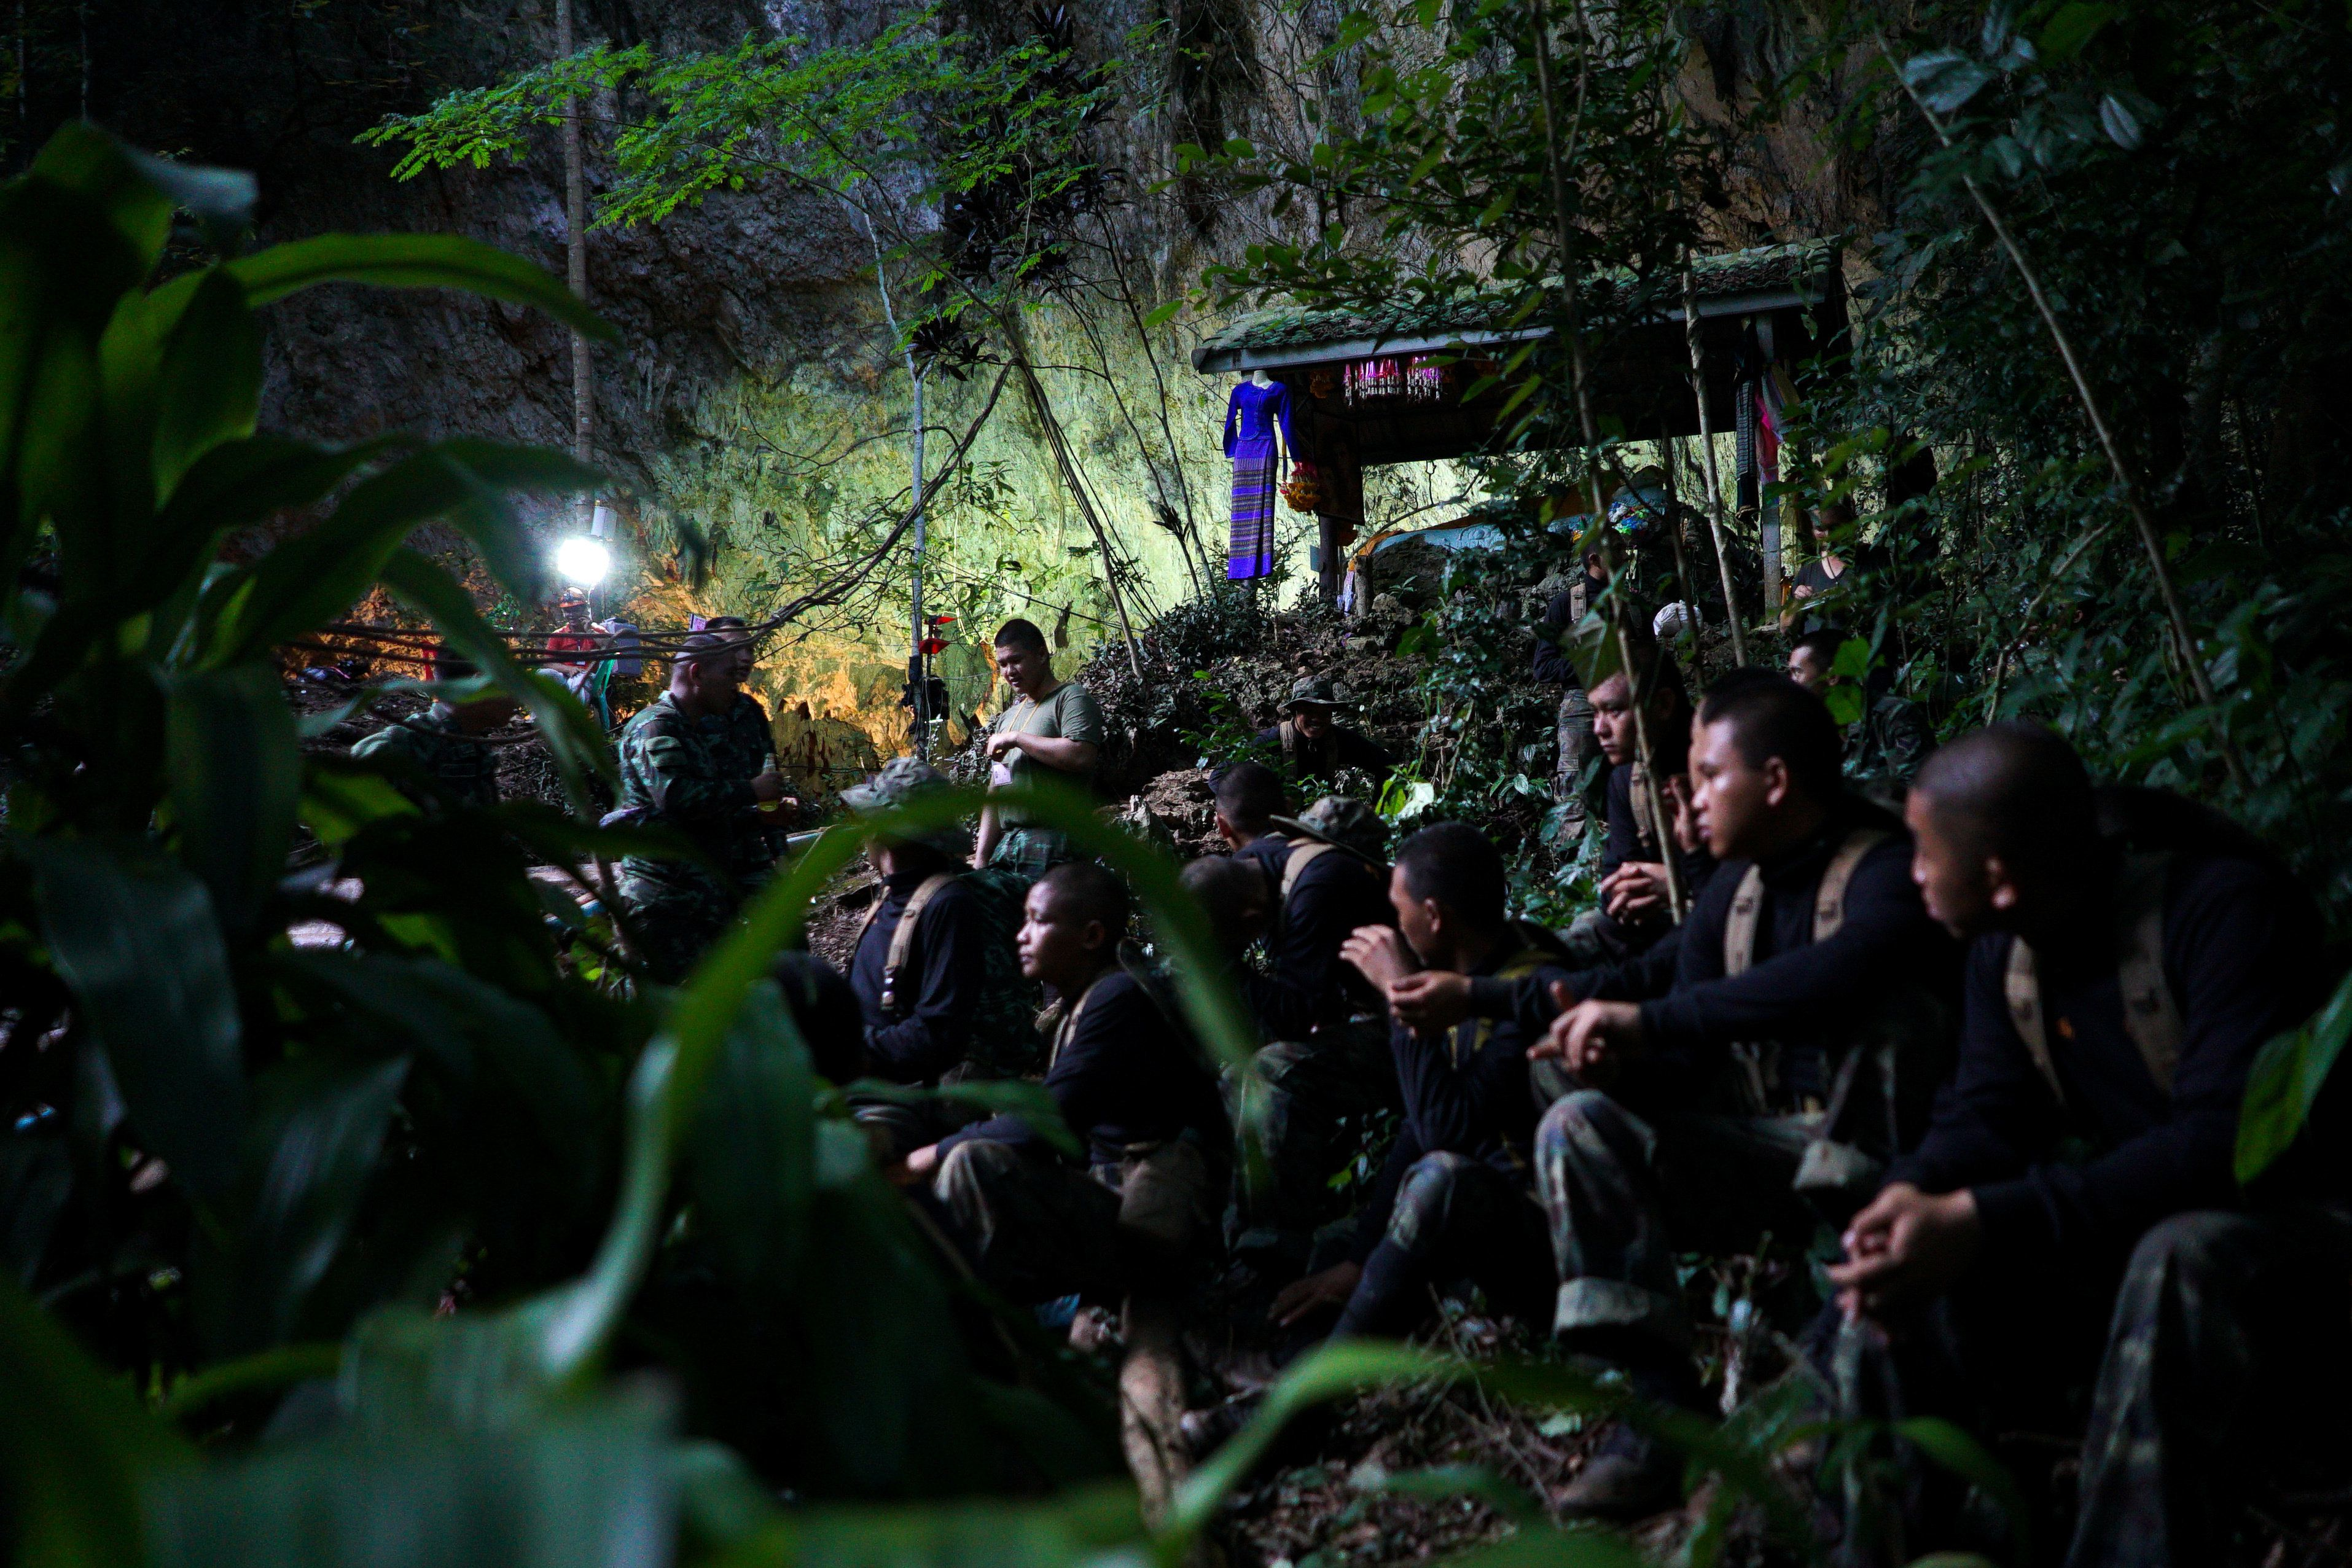 Military personnel gather as they prepare to go in to Tham Luang cave complex, as members of an under-16 soccer team and their coach have been found alive according to local media in the northern province of Chiang Rai, Thailand, July 5, 2018. REUTERS/Athit Perawongmetha